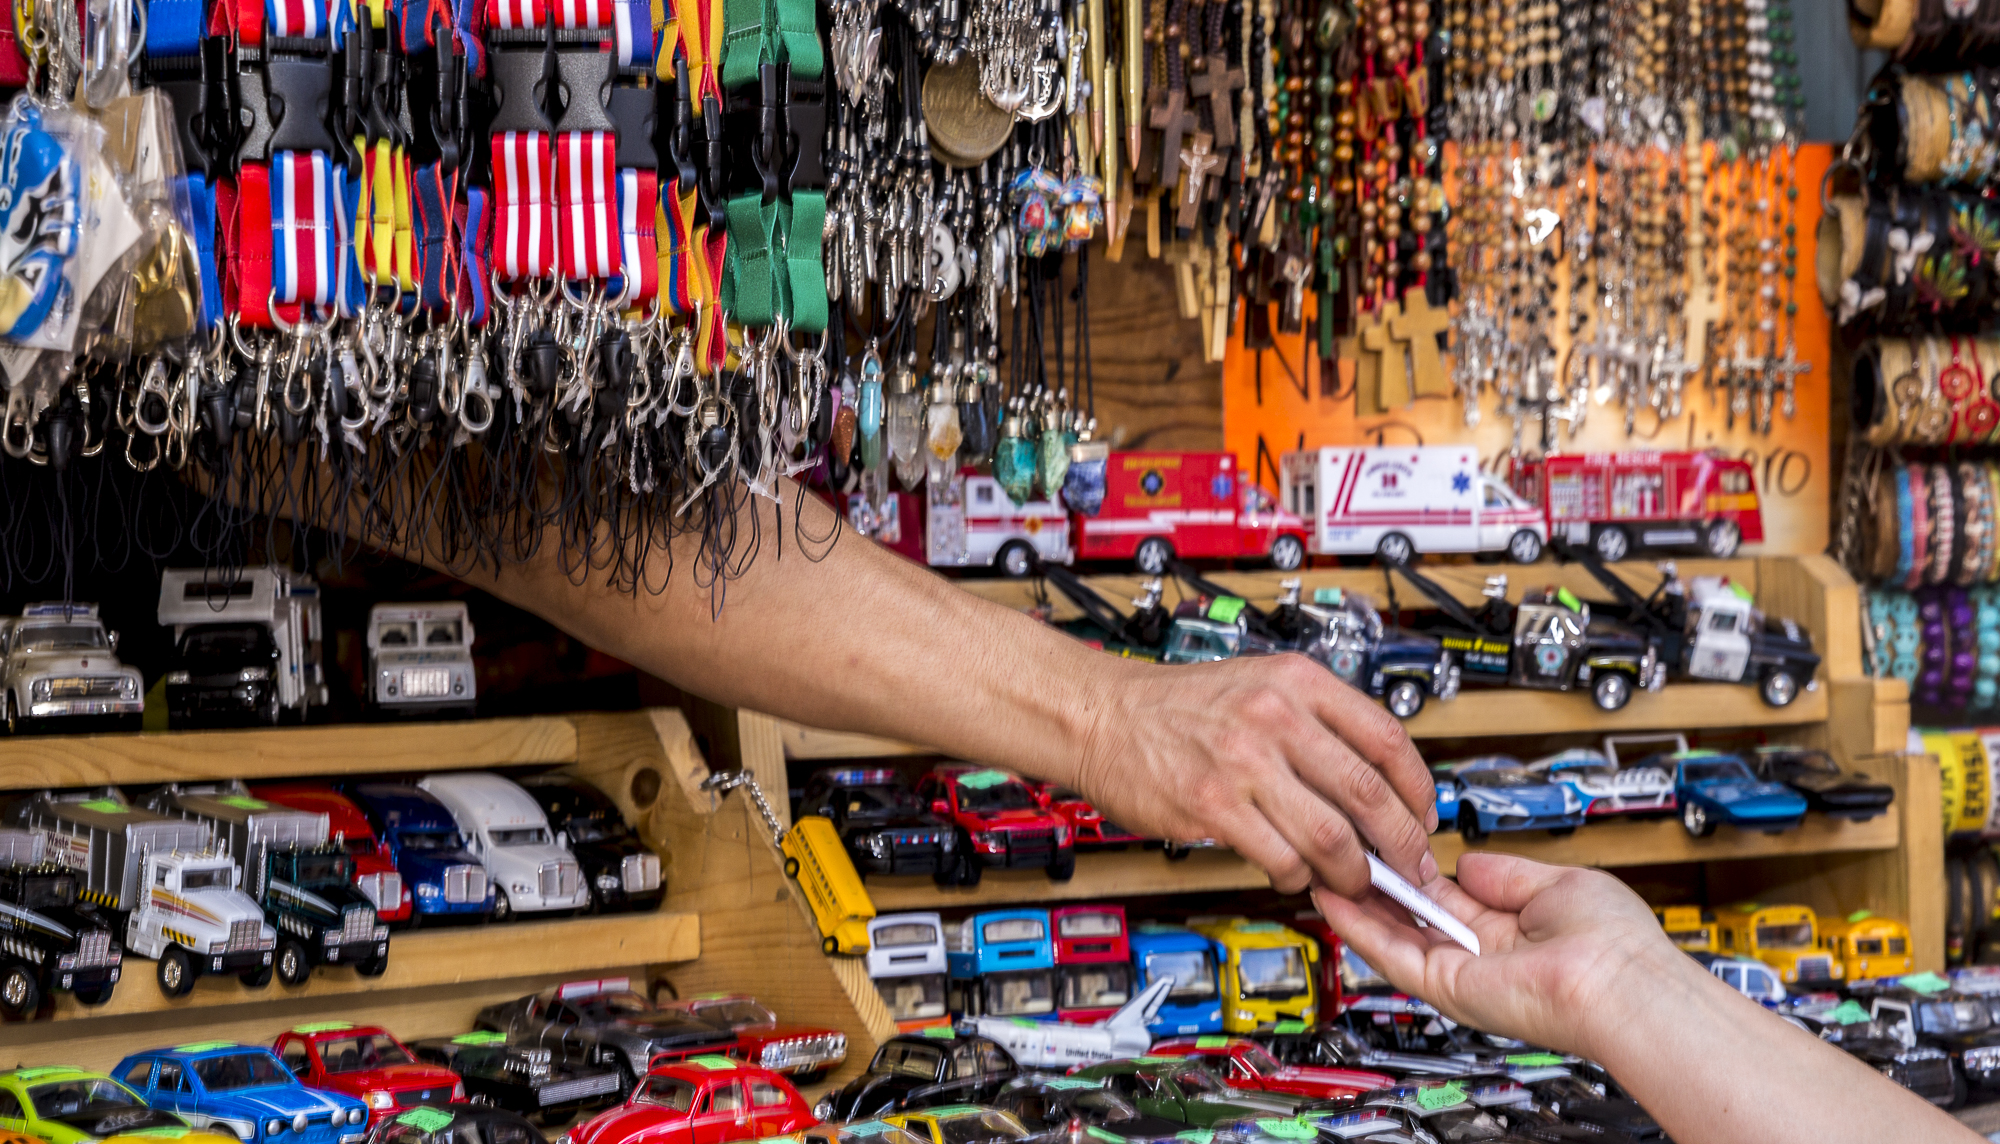 A hand appears out of one of the many stalls to give a receipt to a customer during the annual Olvera Street Cinco De Mayo celebration in Downtown Los Angeles, California on May 5, 2018. (Matthew Martin/Corsair Photo)